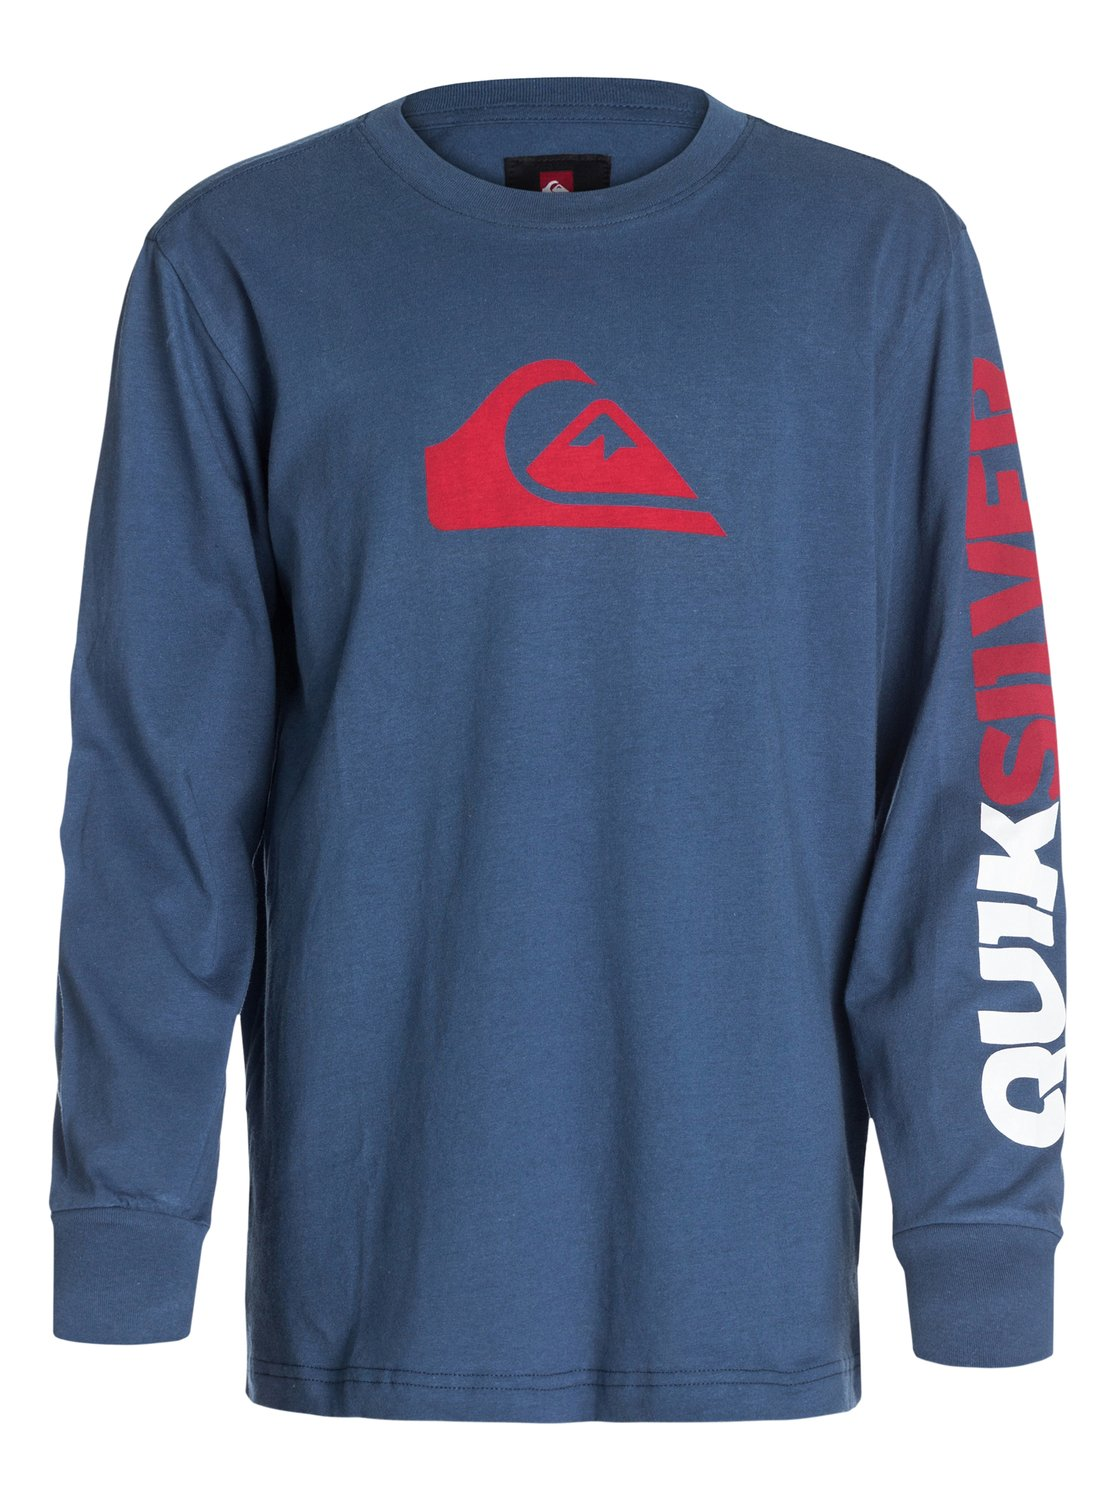 Boys 4 7 mountain and wave long sleeve t shirt 40454003 for Mountain long sleeve t shirts